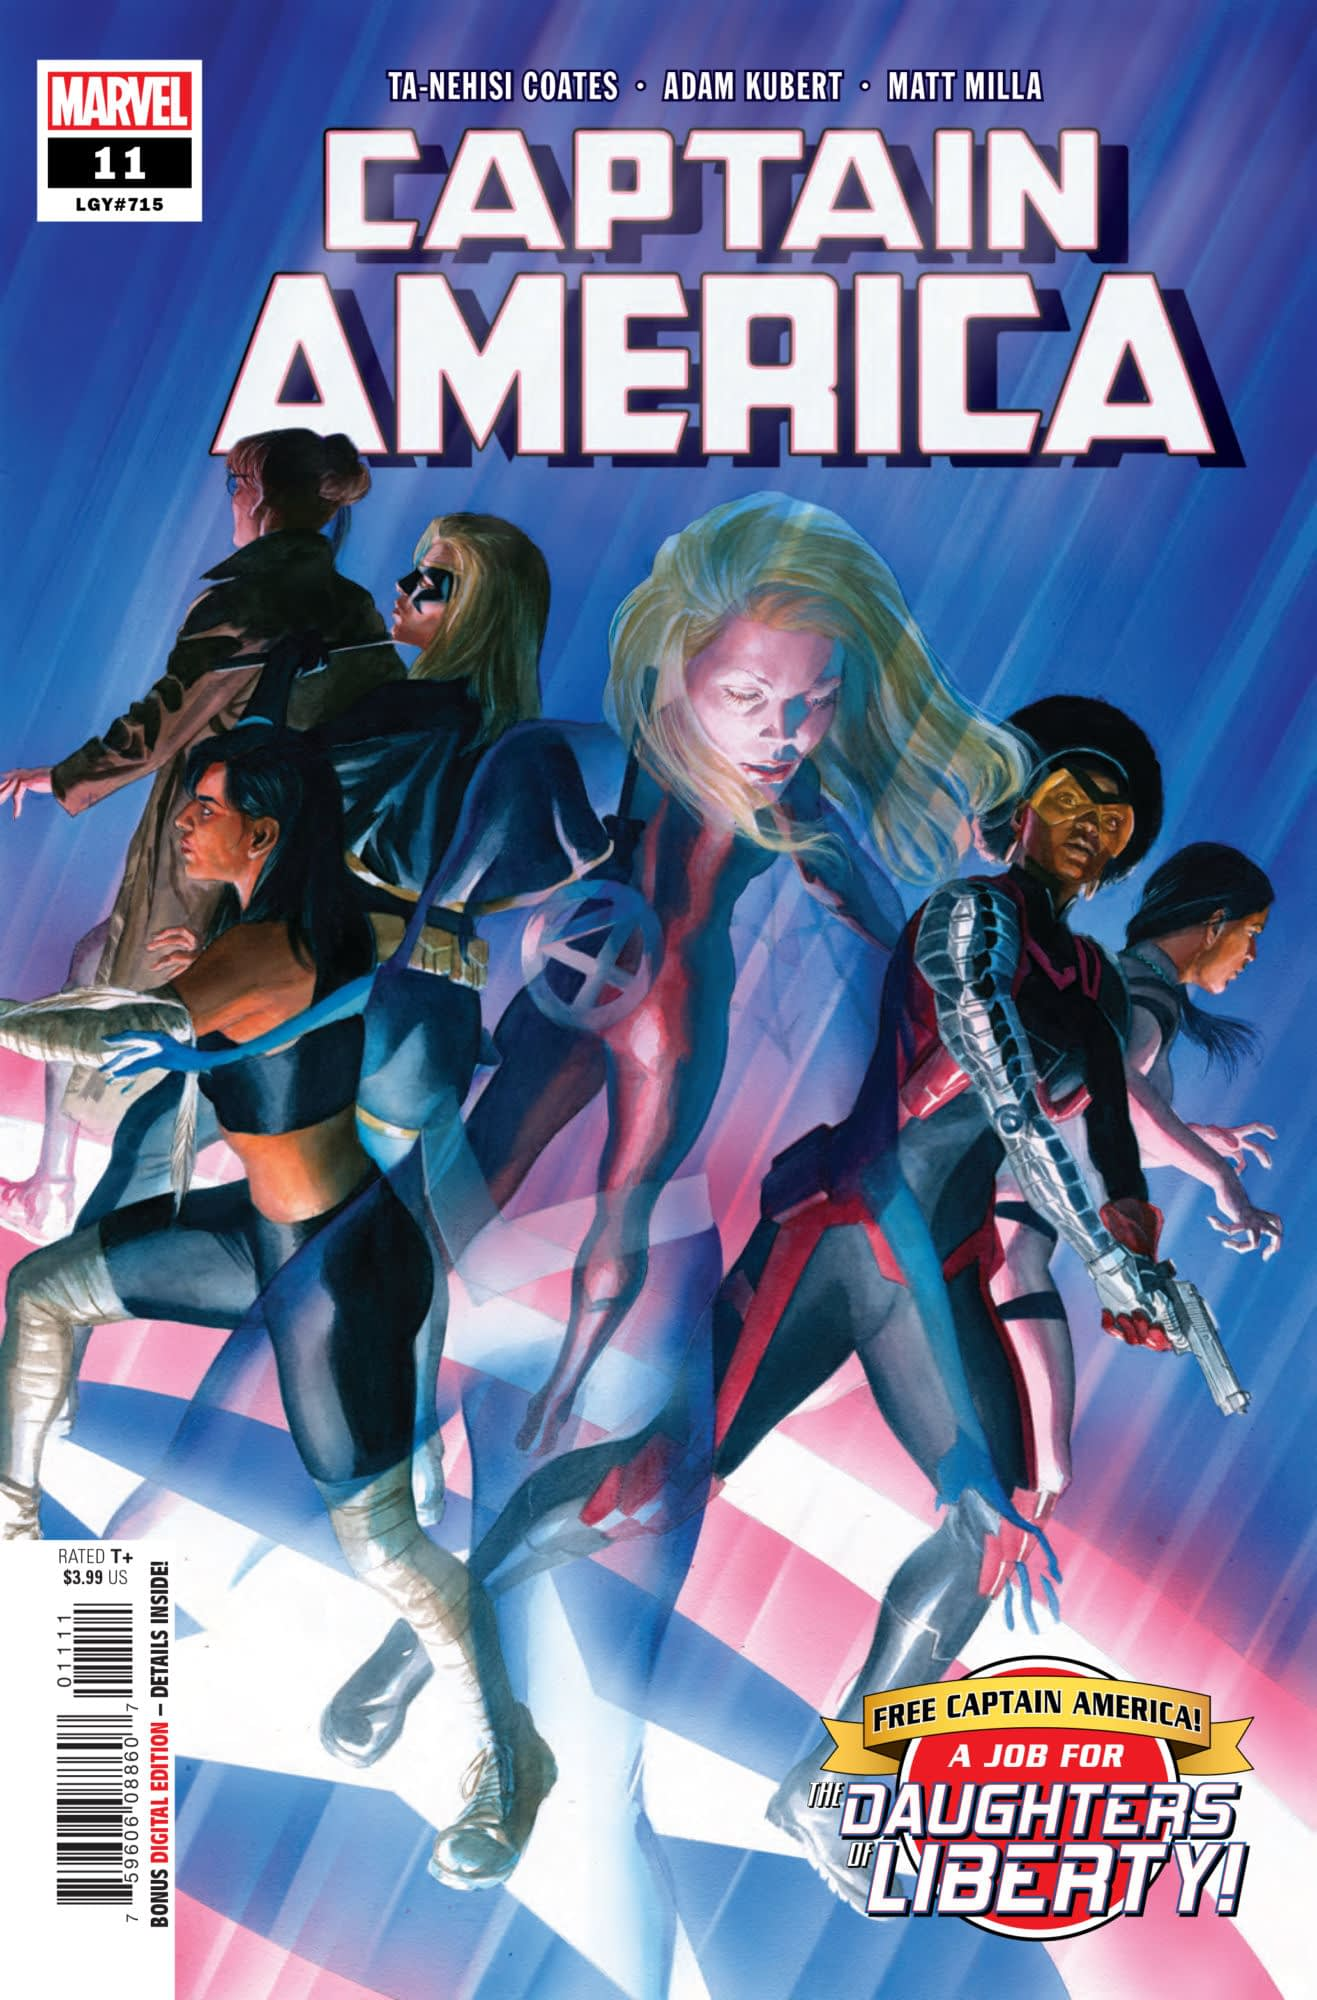 Captain America Leads an Army of Villains on a Prison Break in Captain America #11